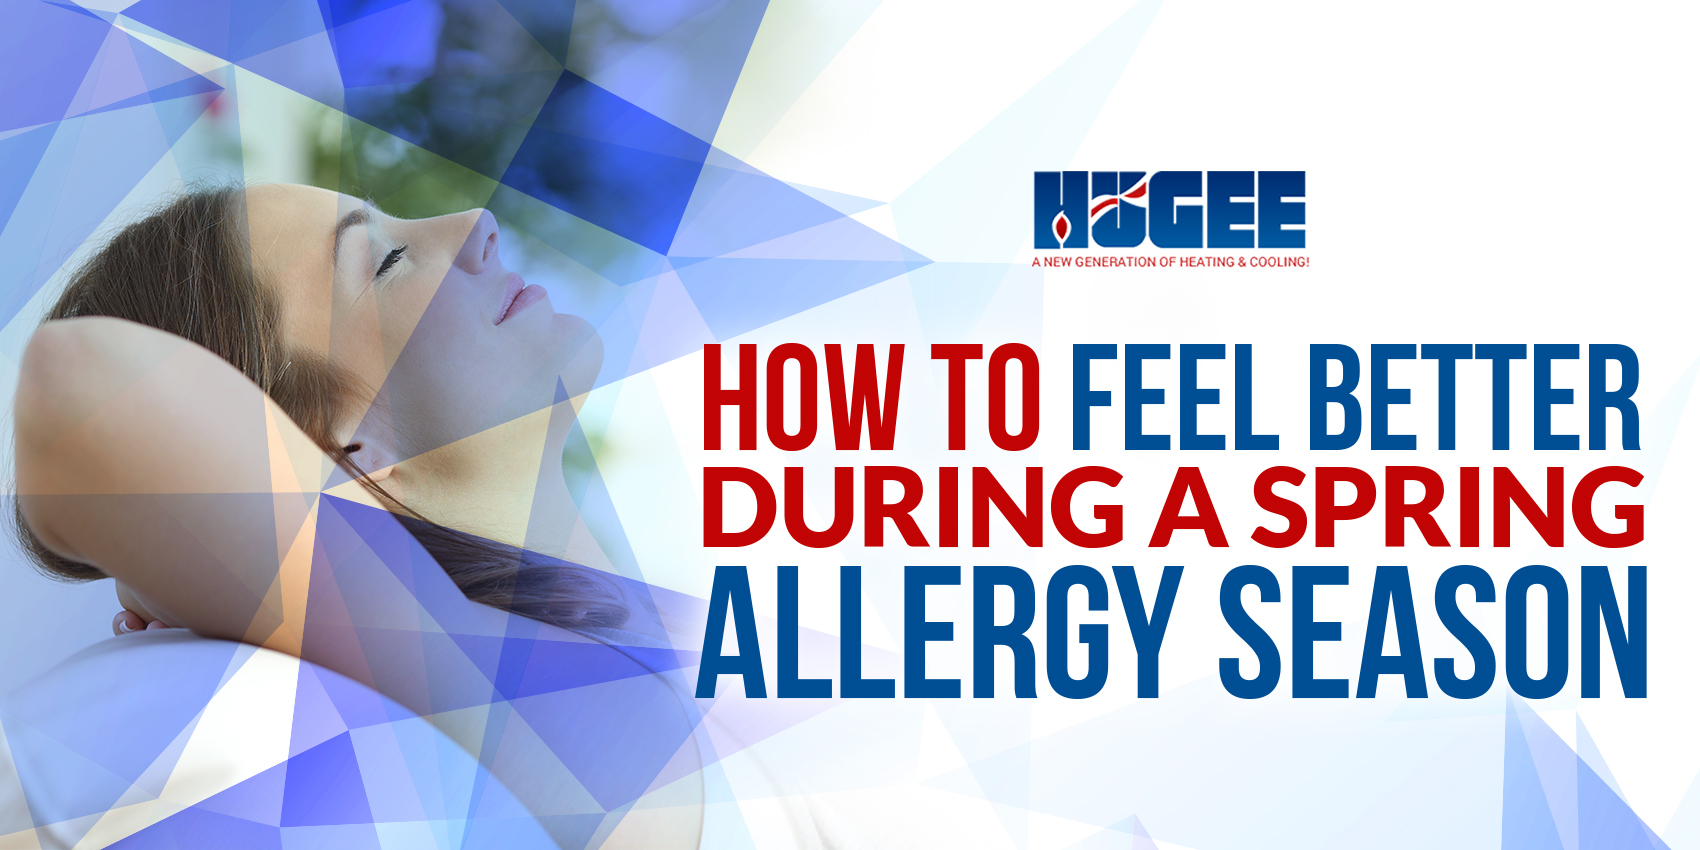 How To Feel Better During a Spring Allergy Season